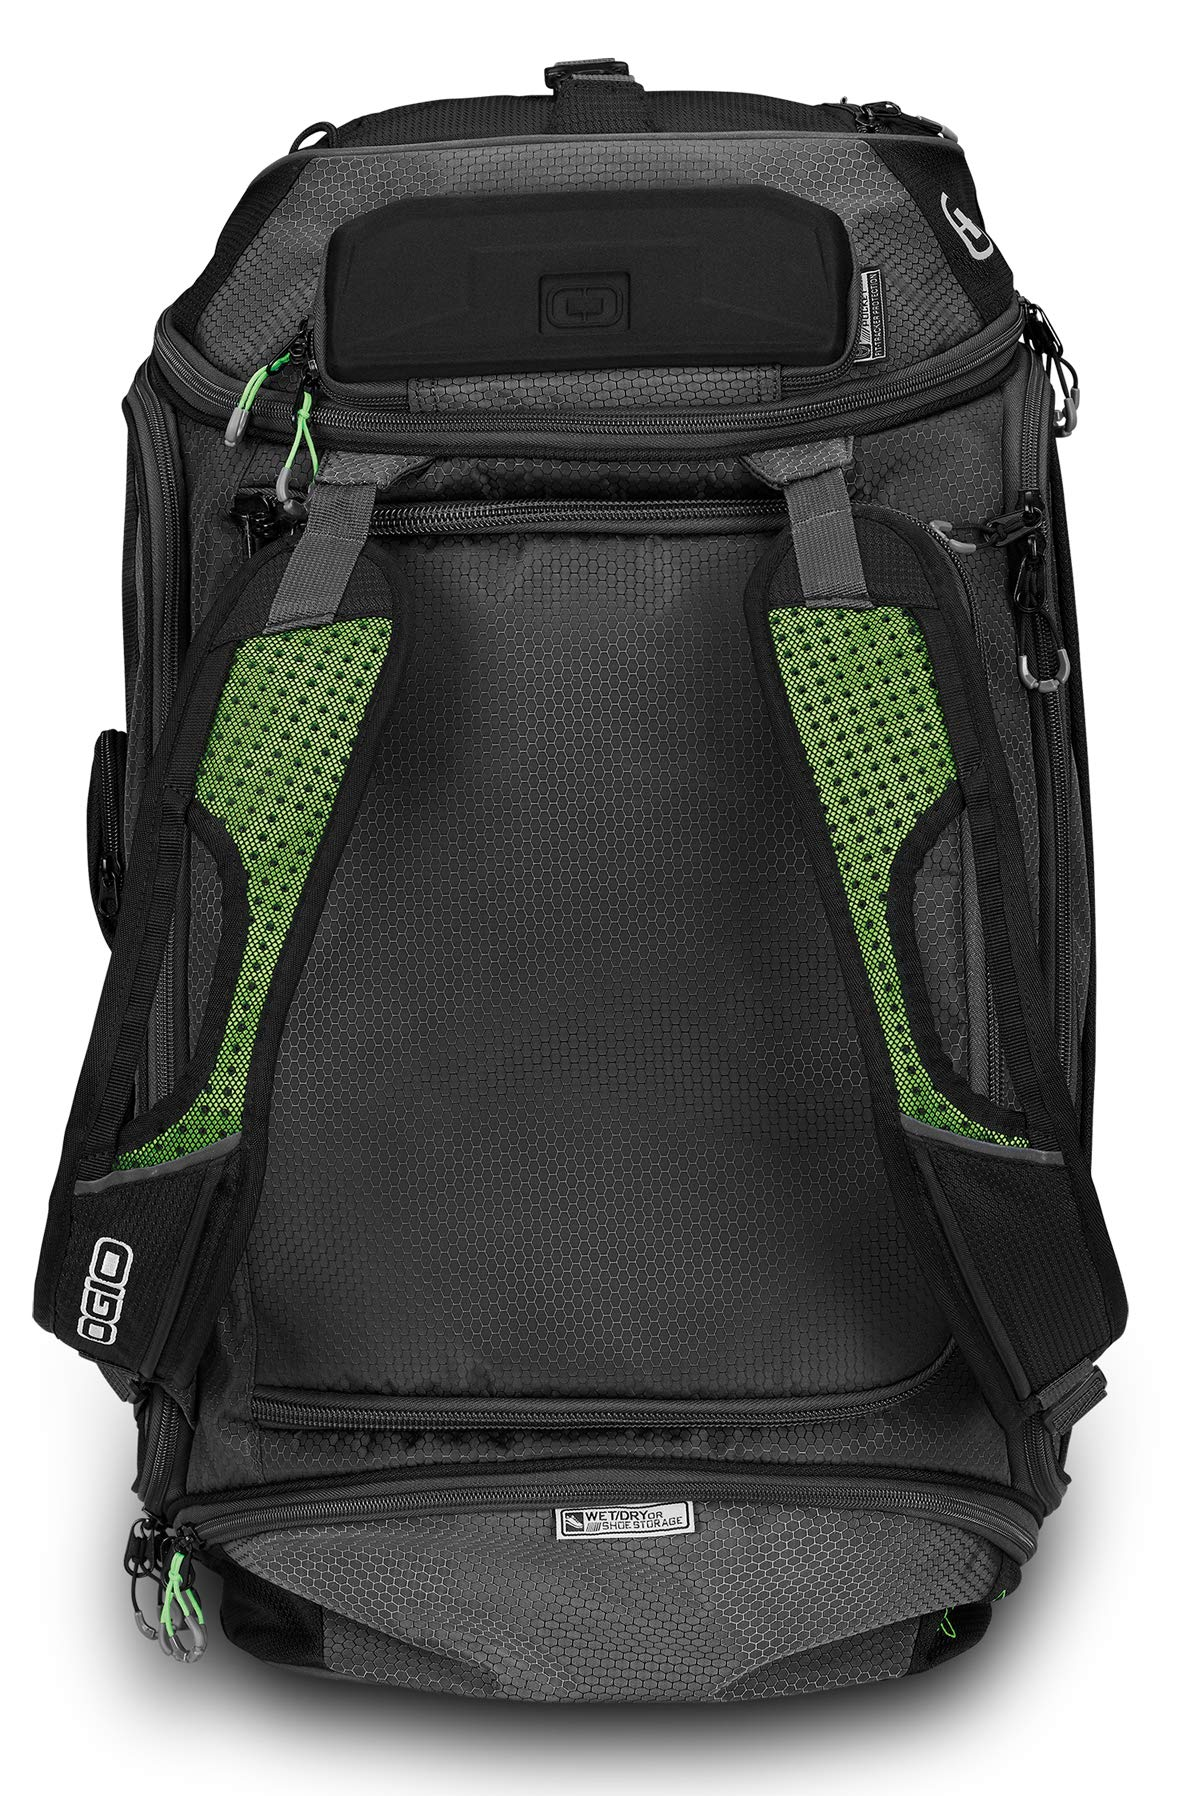 OGIO Endurance 9.0 Bag by OGIO